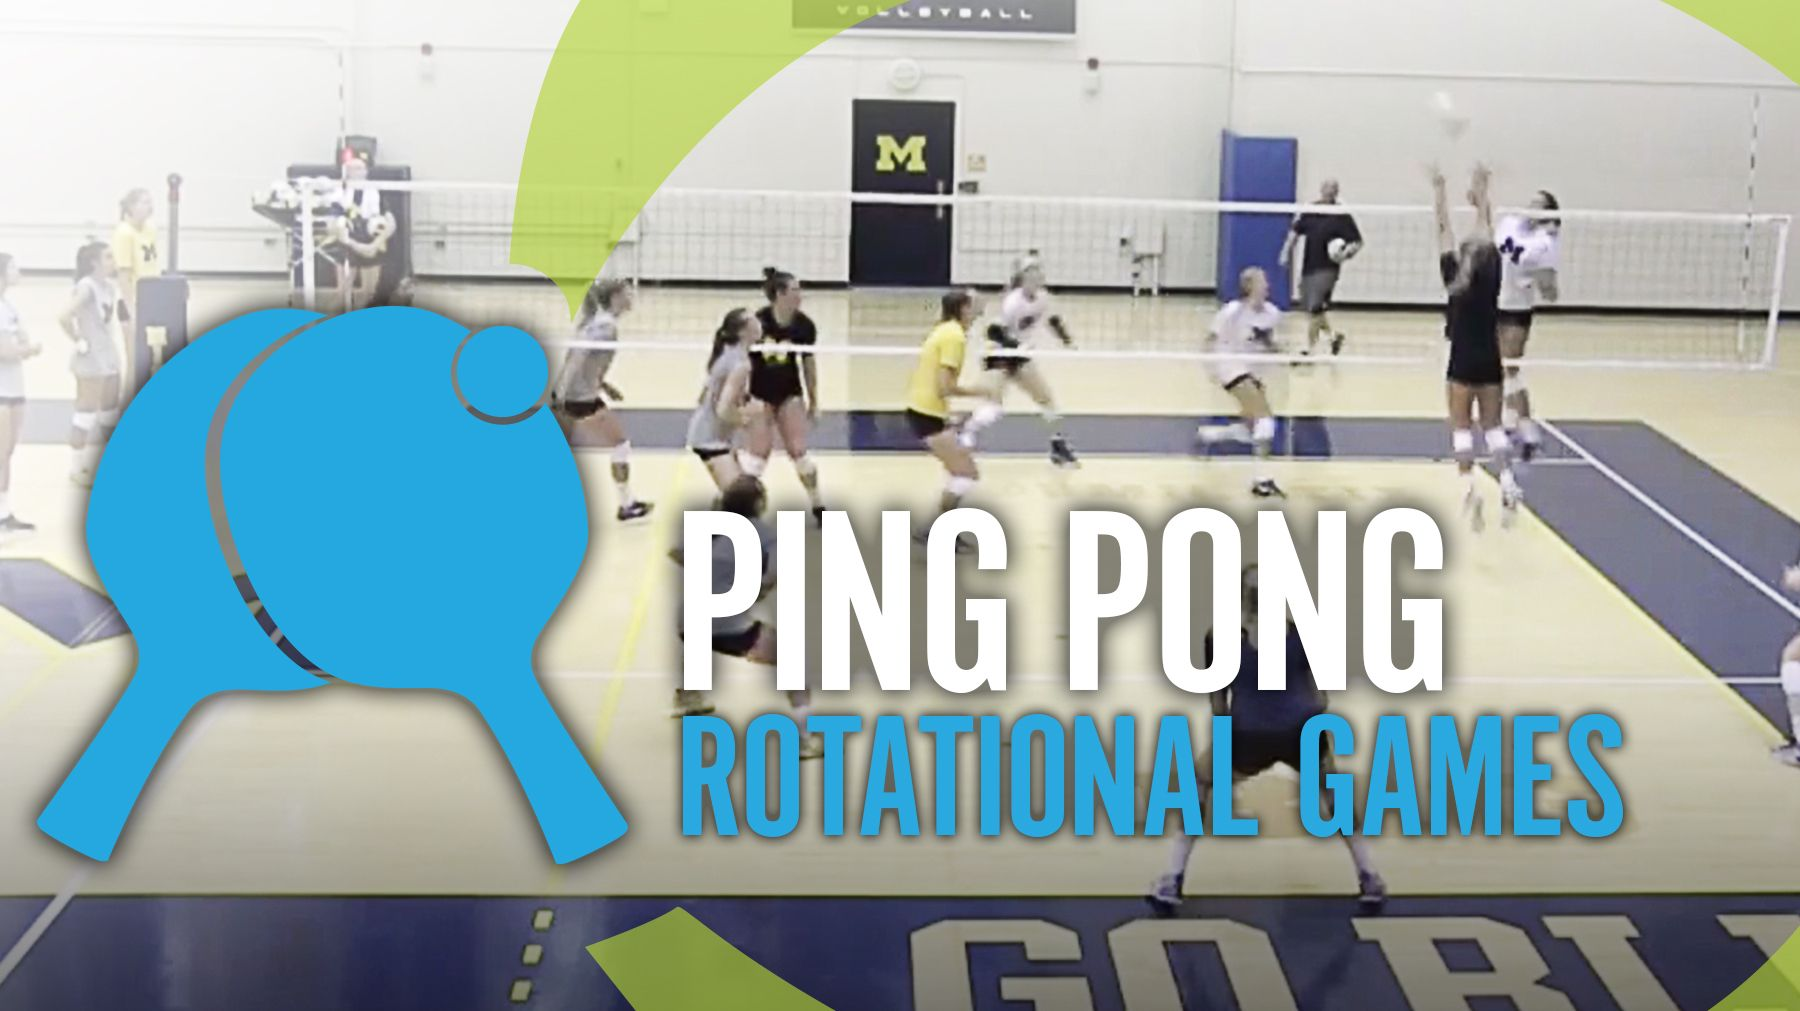 Ping Pong Rotational Games The Art Of Coaching Volleyball Coaching Volleyball Youth Volleyball Volleyball Drills